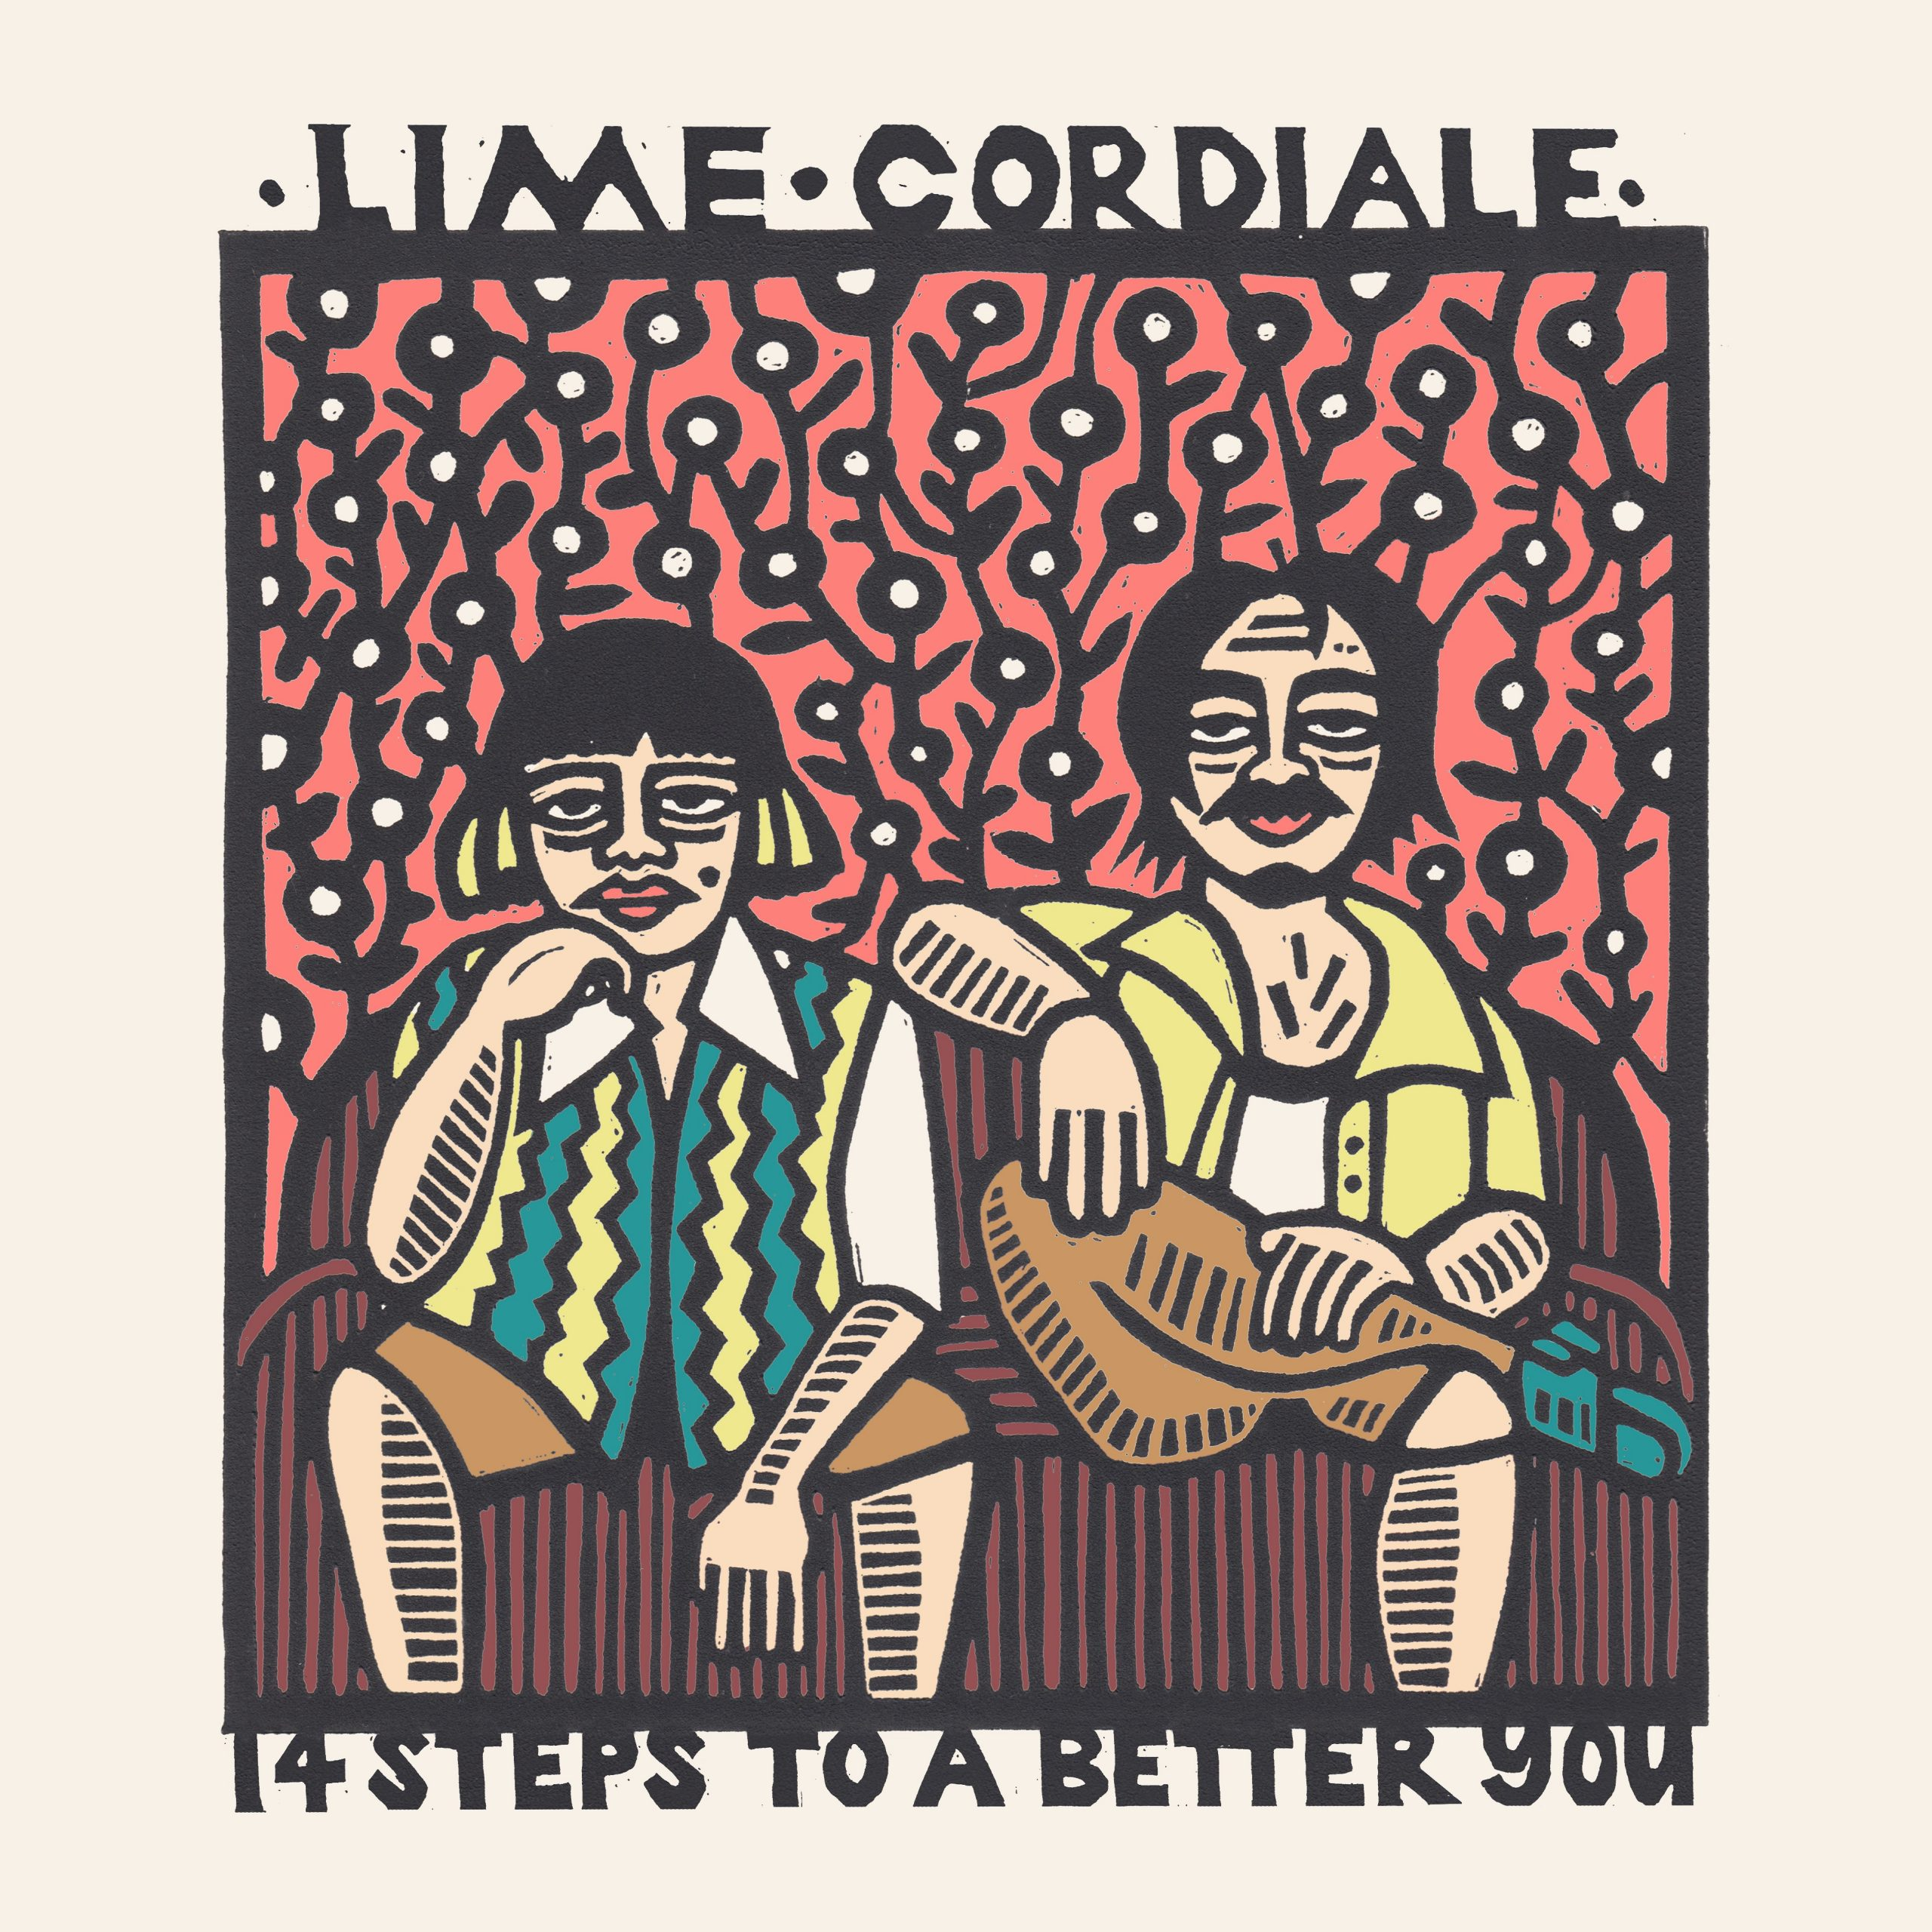 Lime Cordiale – 14 Steps To A Better You